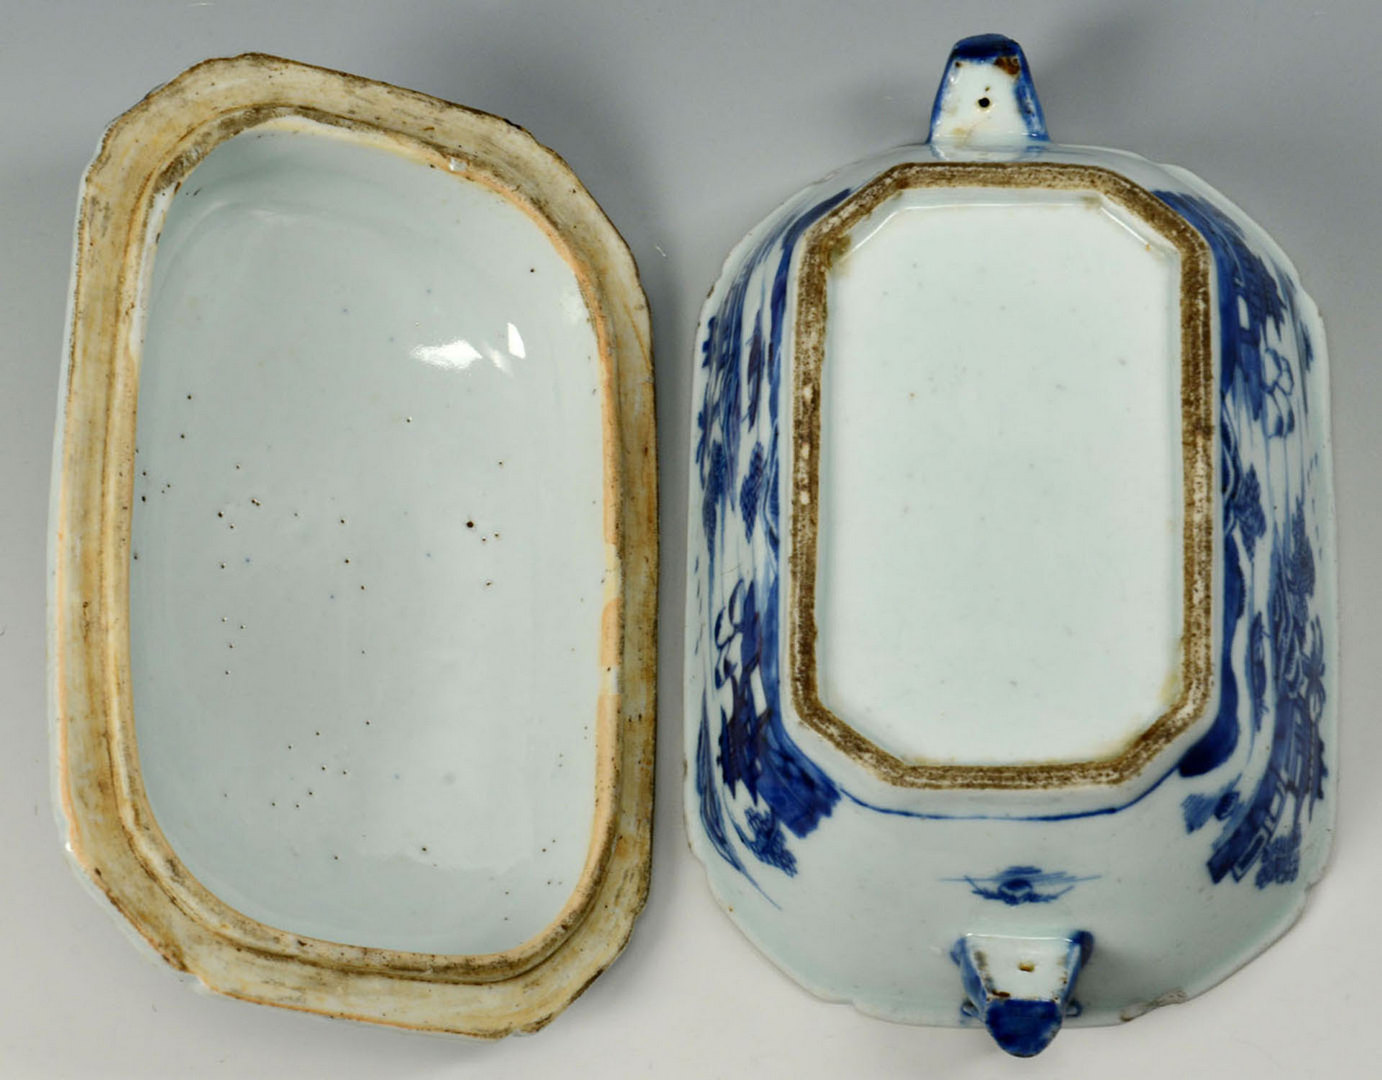 Lot 233: Chinese blue and white sauce tureen and salts